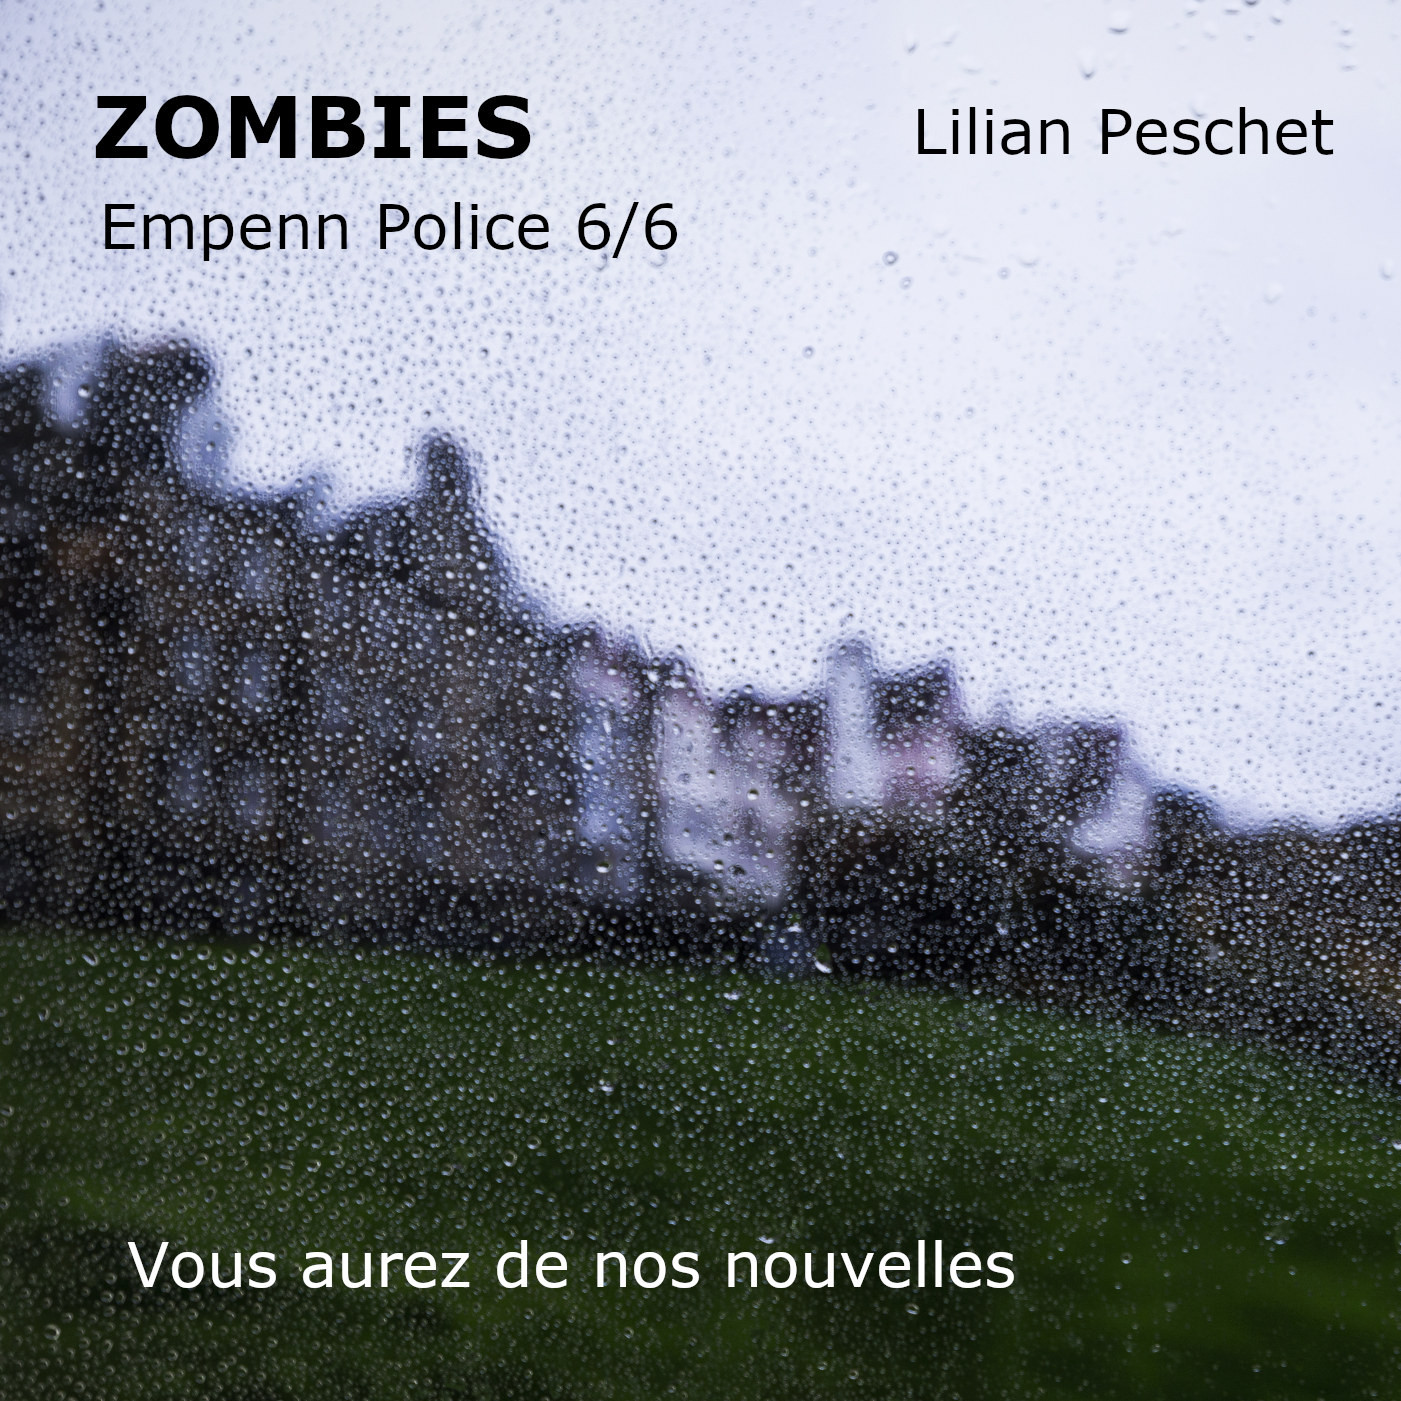 Zombies - Empenn Police 6/6